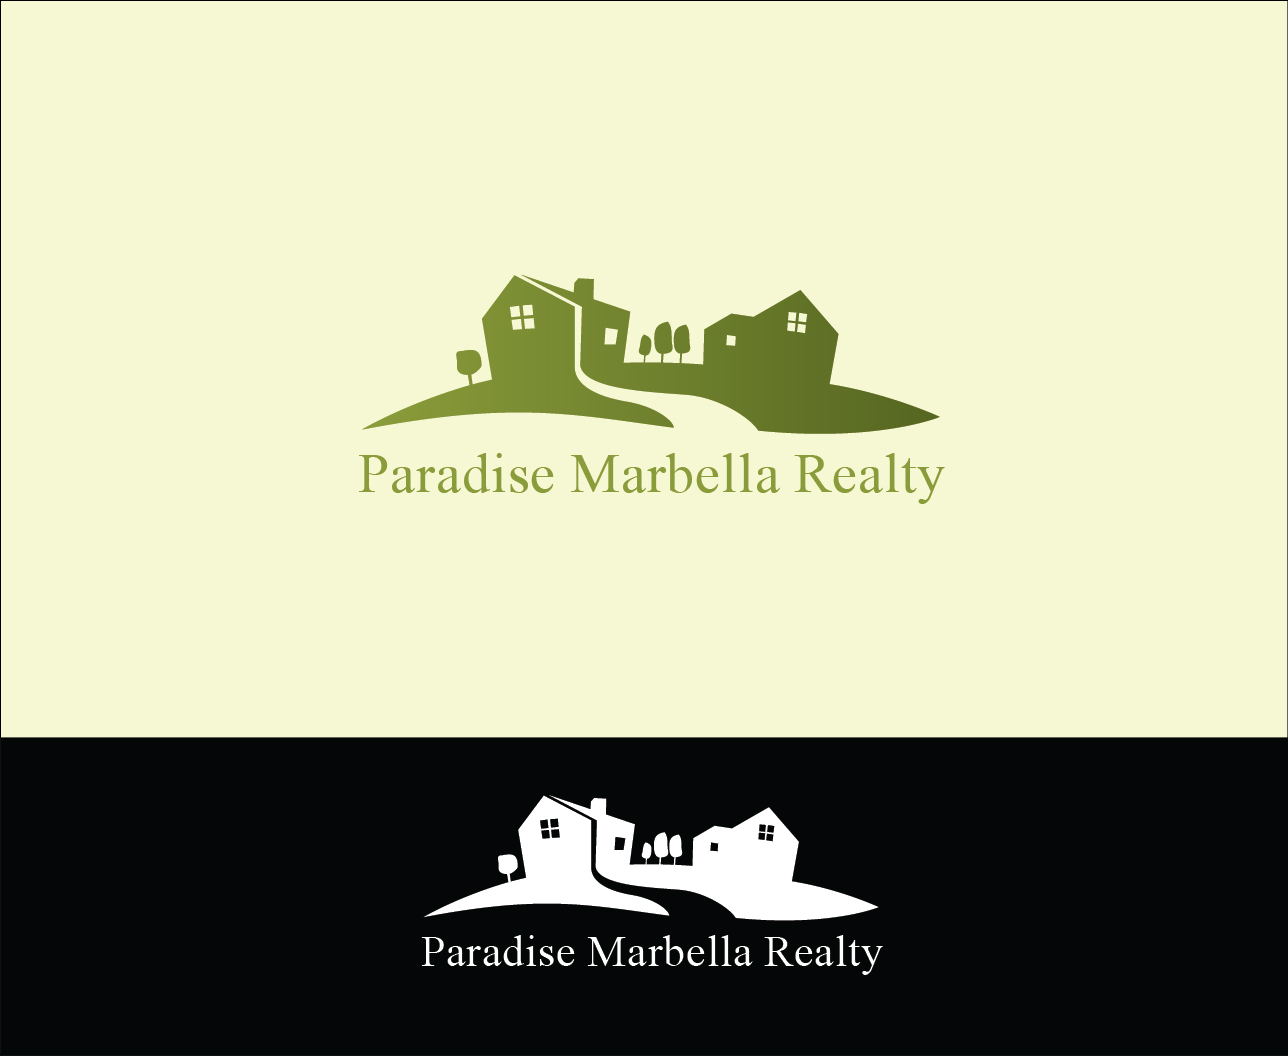 Logo Design by Derel Valarian - Entry No. 34 in the Logo Design Contest Captivating Logo Design for Paradise Marbella Realty.